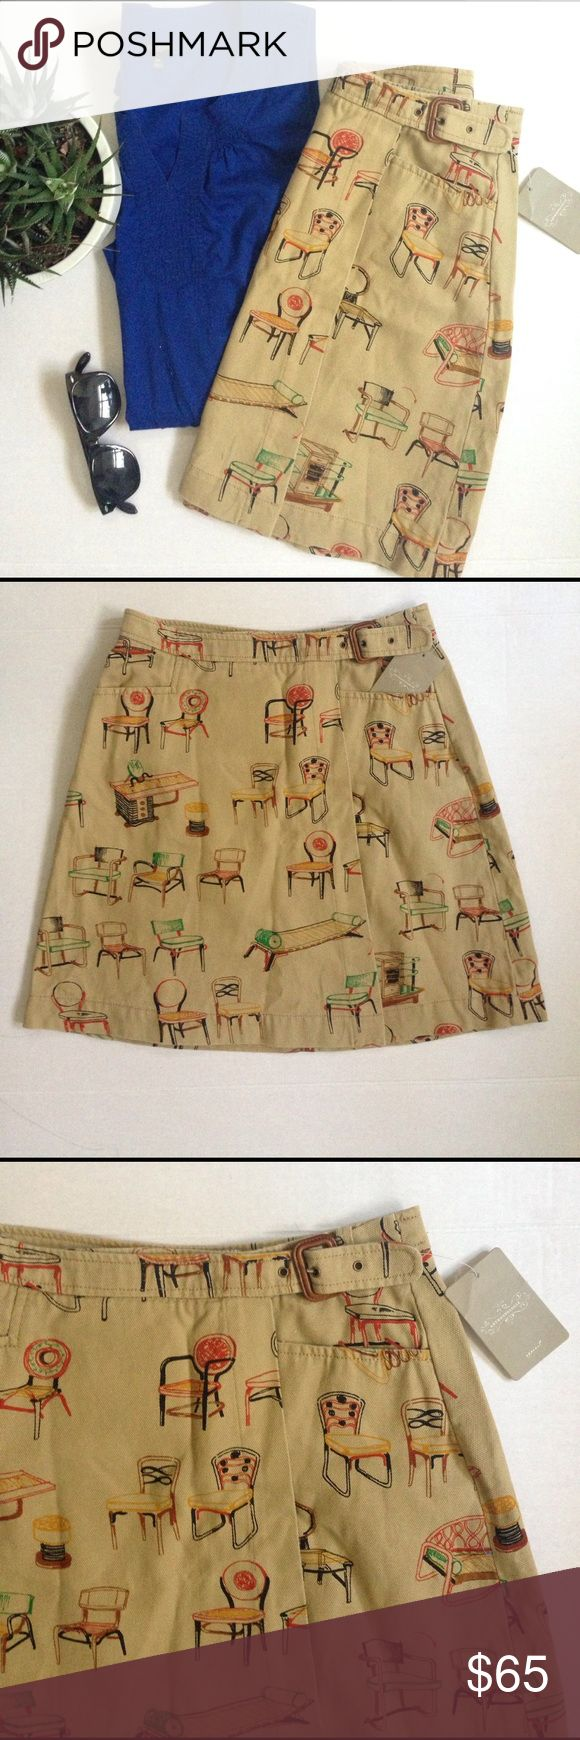 """Anthropologie chairs wrap skirt Very cute Anthropologie chairs canvas wrap skirt in natural. In brand new condition. Fun way to wear for spring or summer. Above the knee length. Length measures 17.5"""" Anthropologie Skirts"""